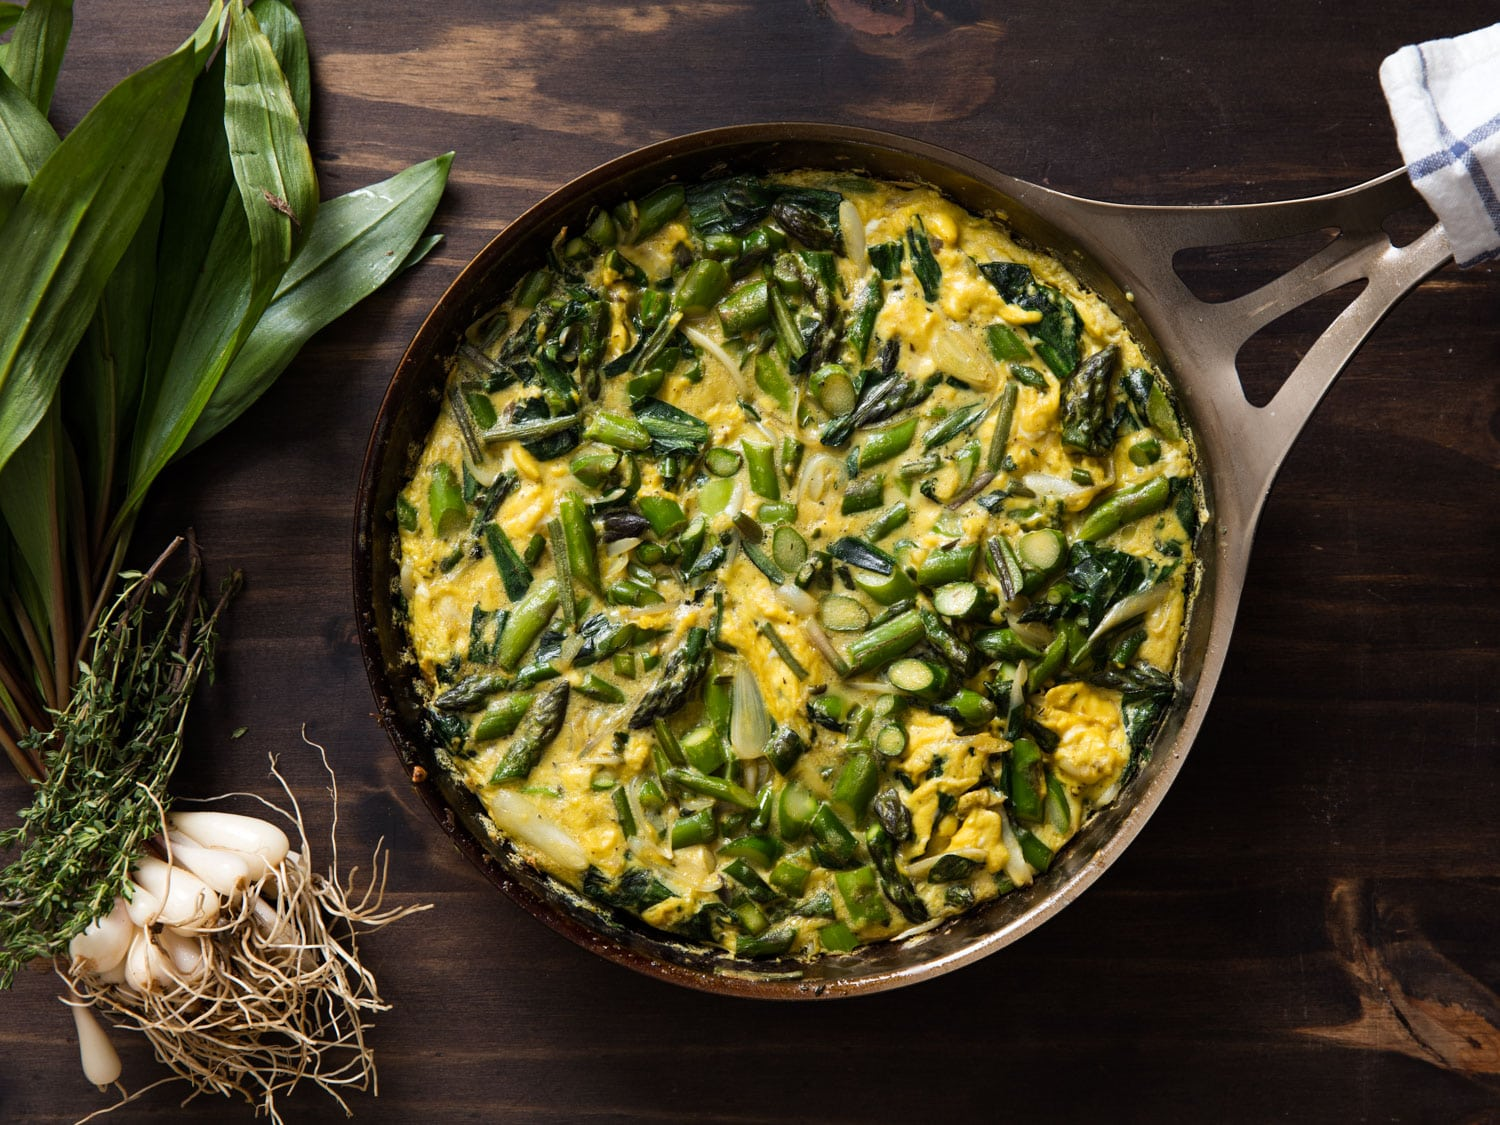 20160505-frittata-ramps-asparagus-fennel-vicky-wasik-9